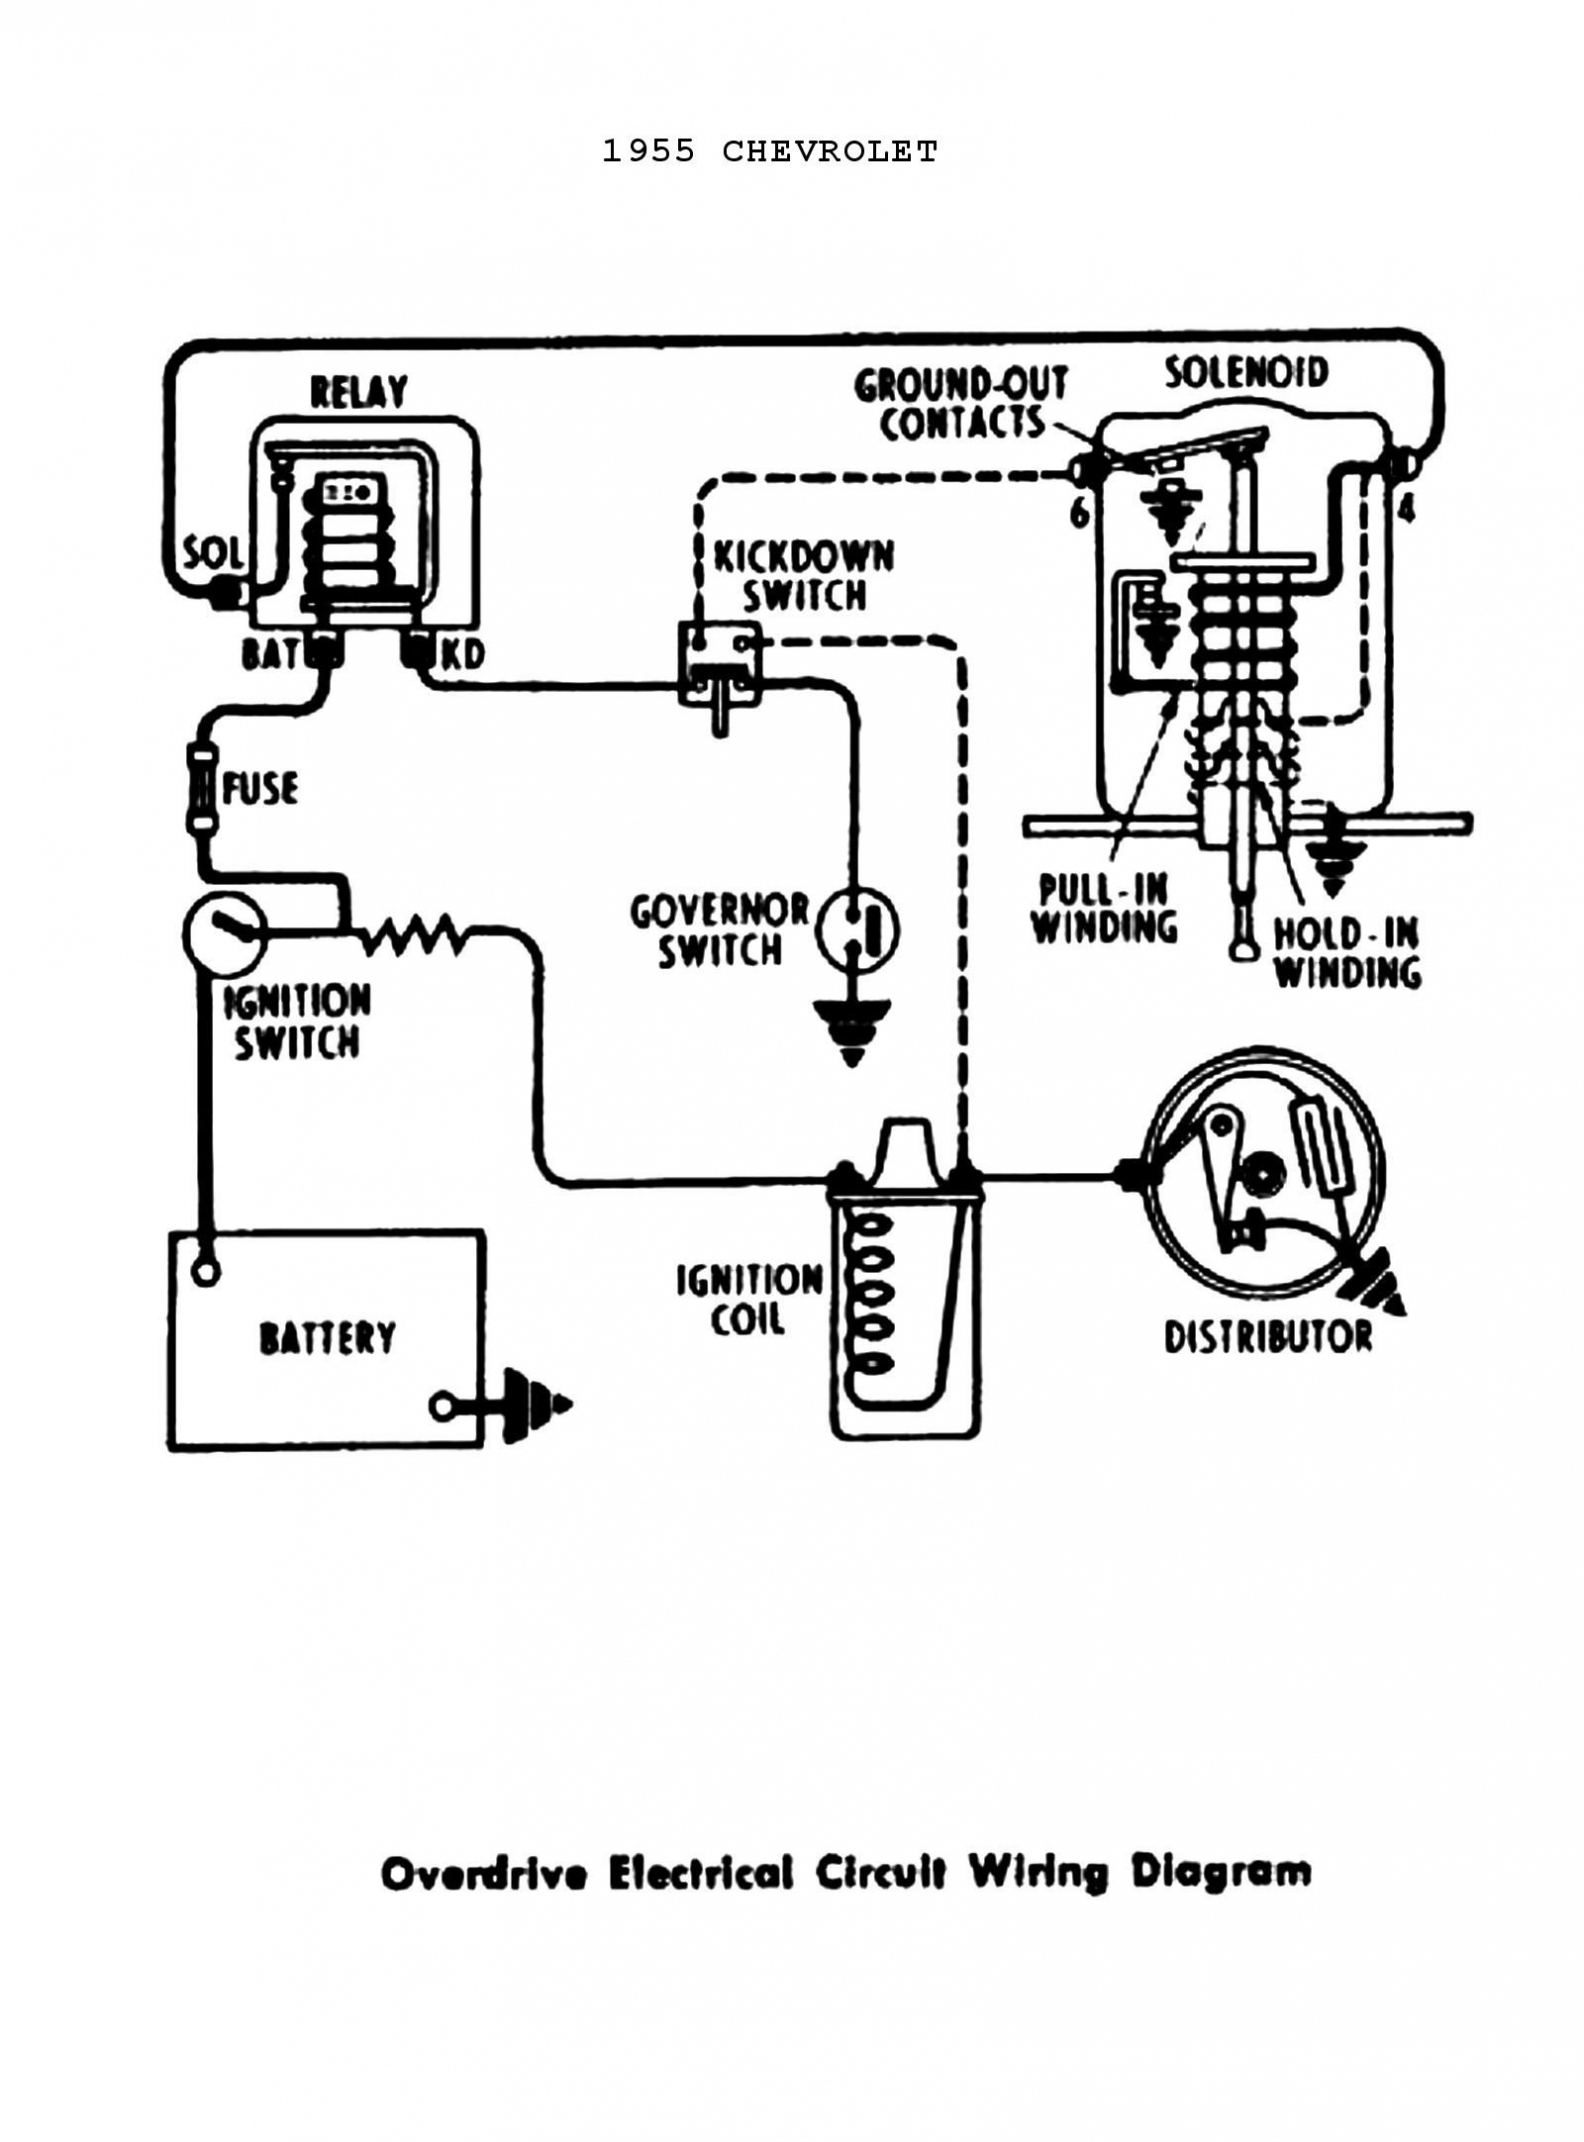 Ford Tractor Alternator Wiring Diagram Wire Center • – Ford 8N 12 - 8N Wiring Diagram